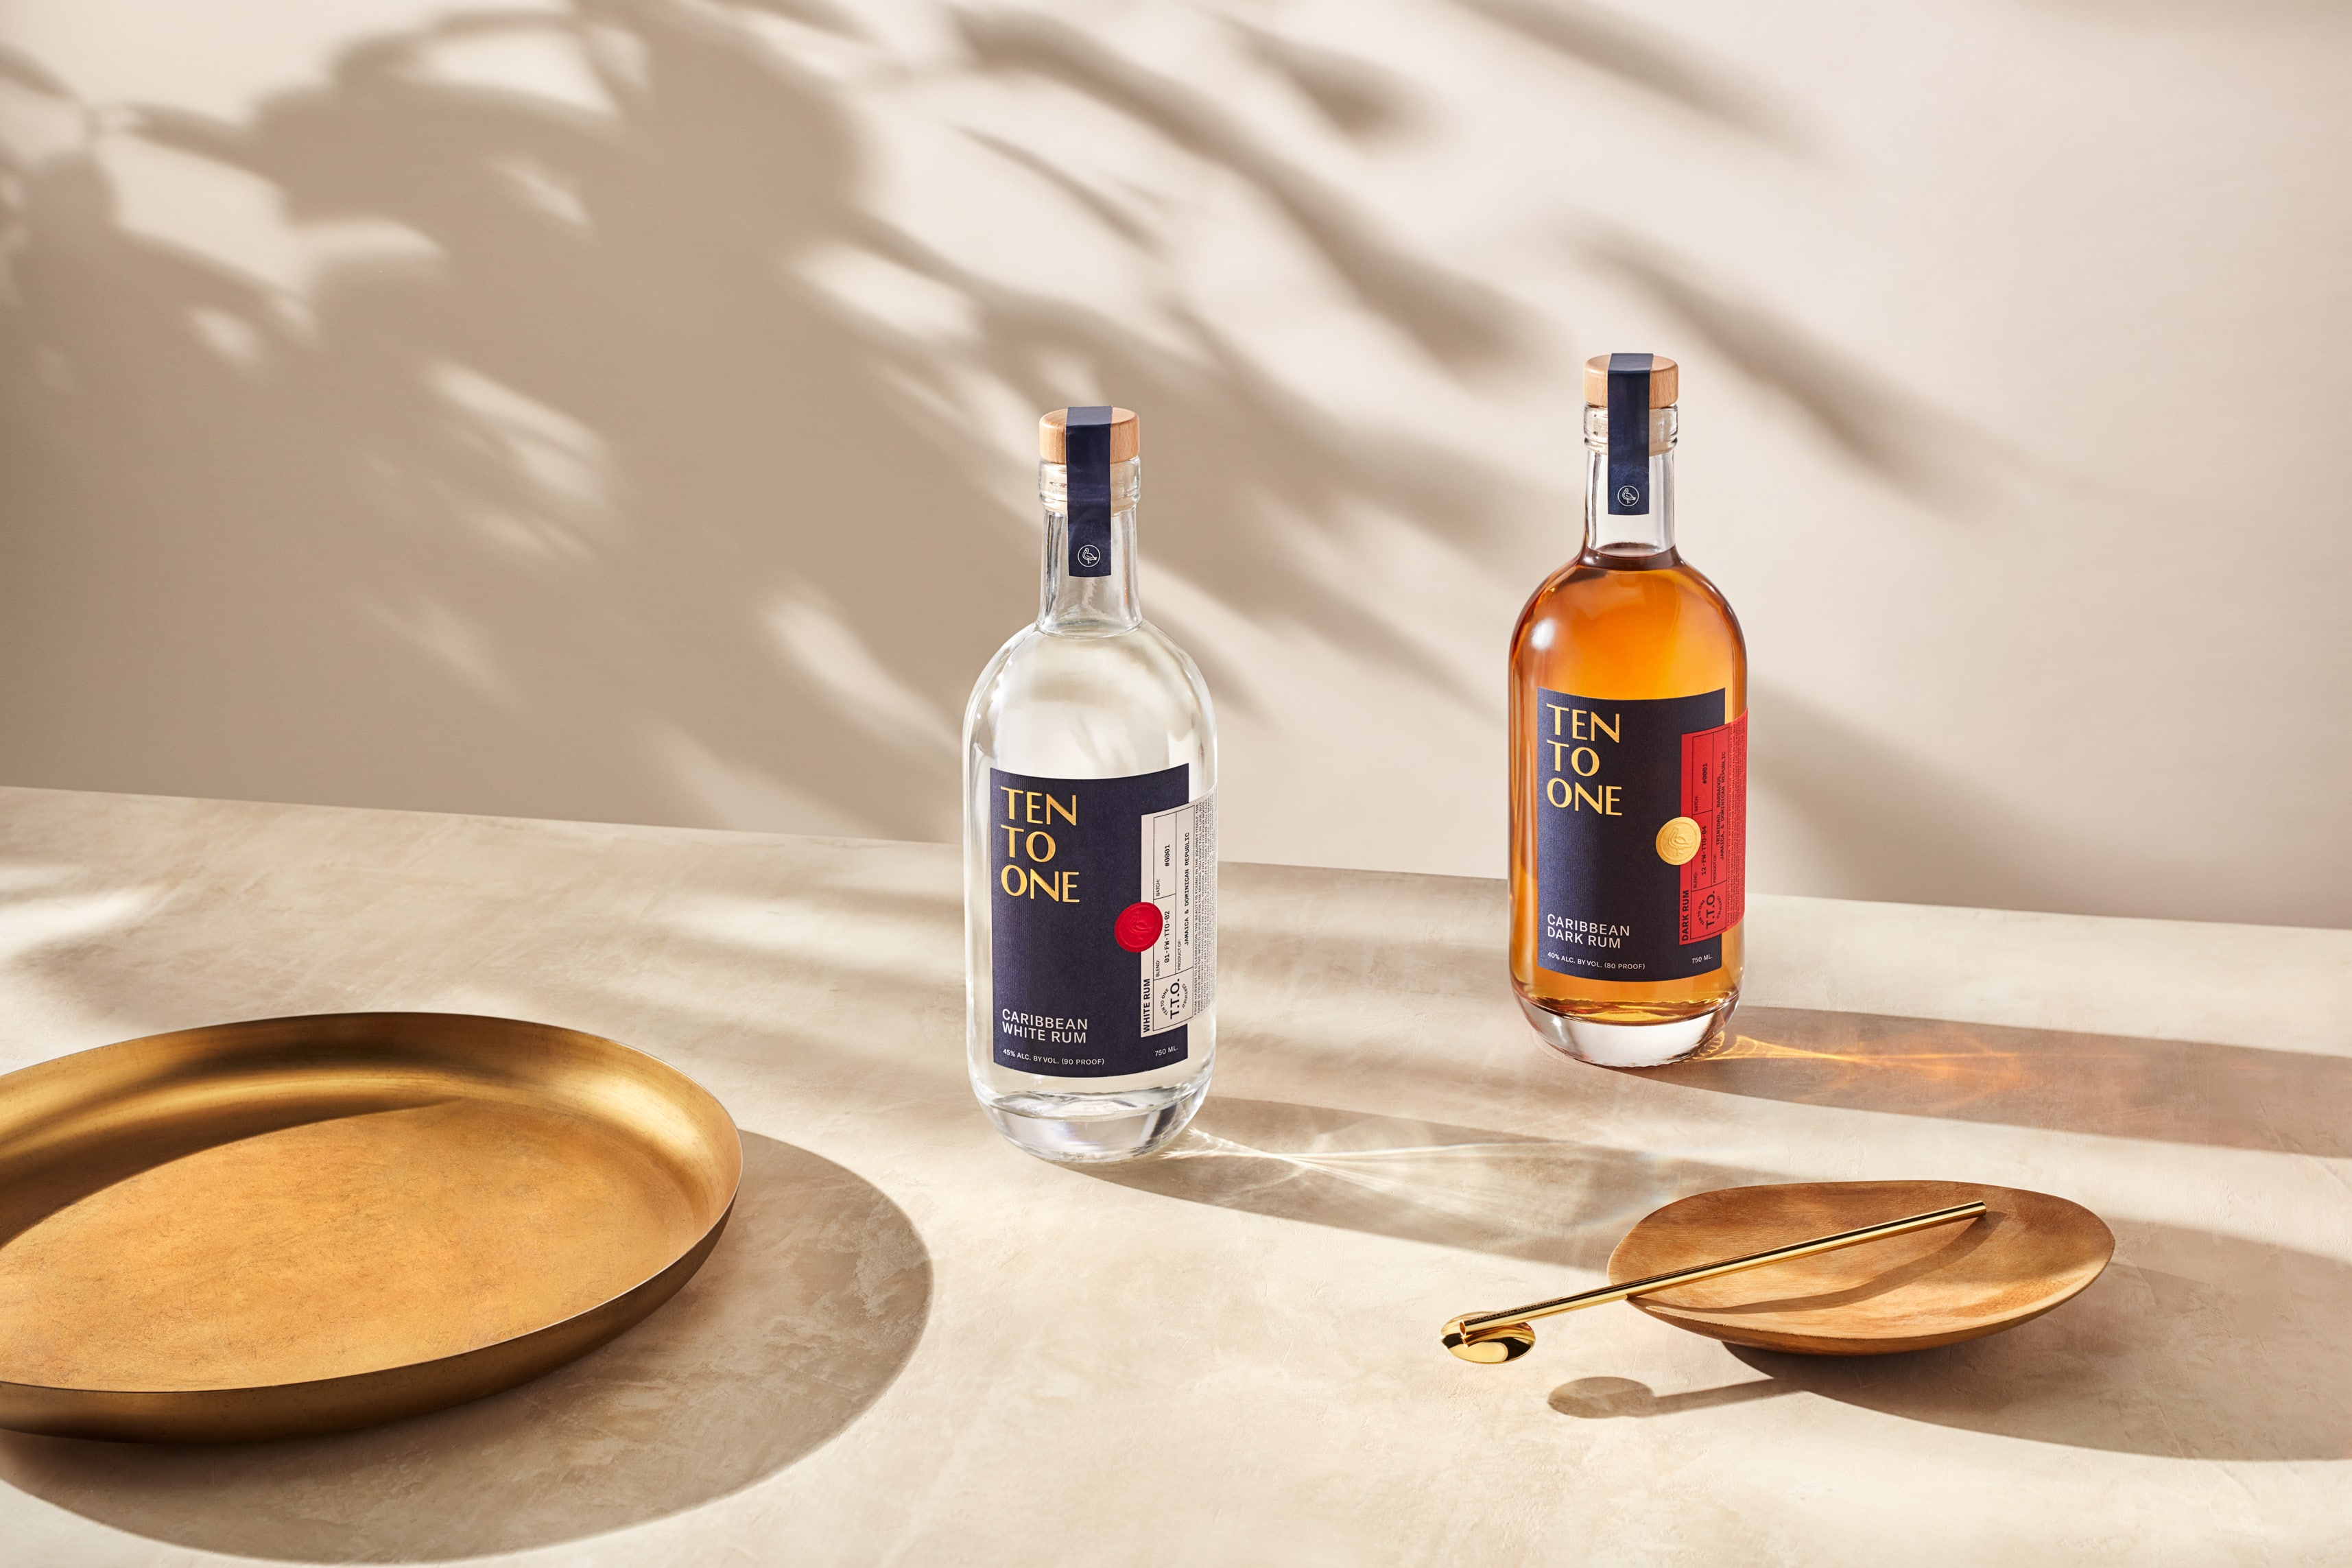 Bottles of Ten to One rum with assorted modern plates